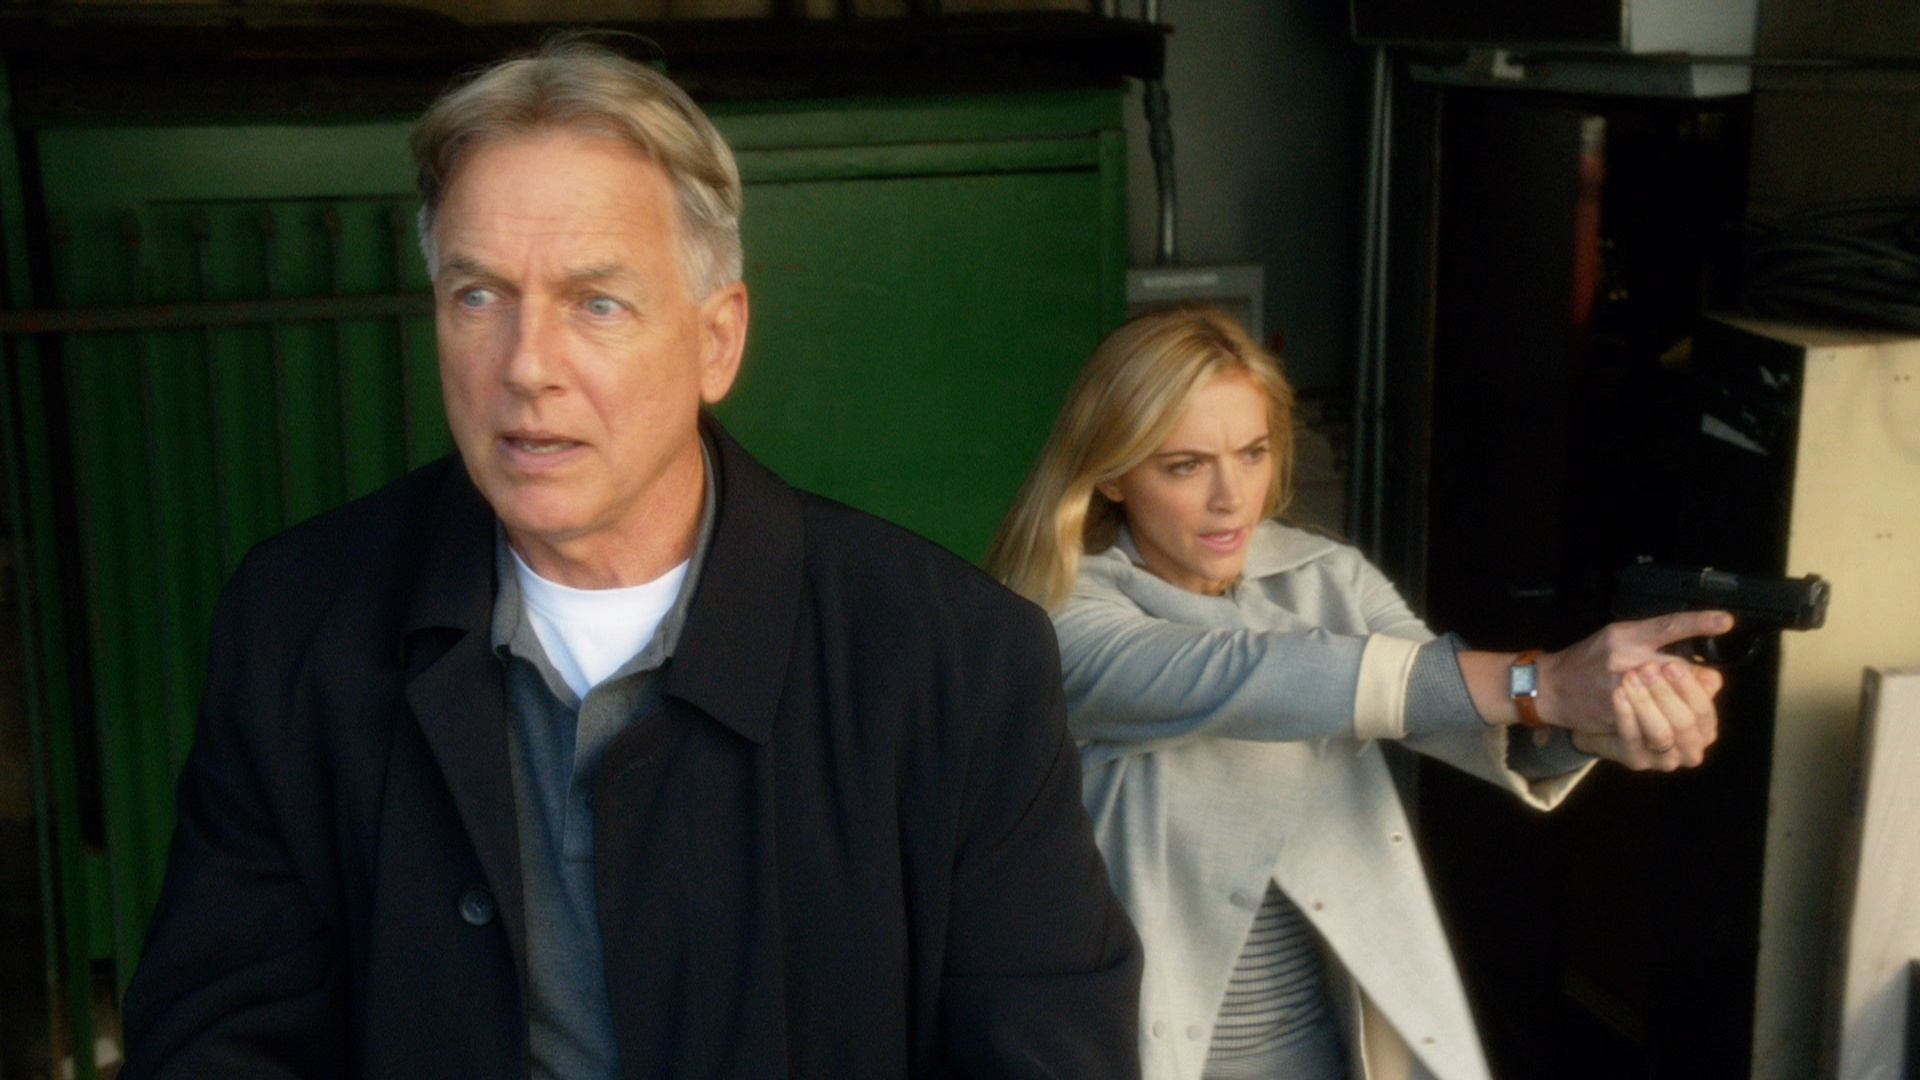 NCIS episodes film near Los Angeles unless there's a crossover.